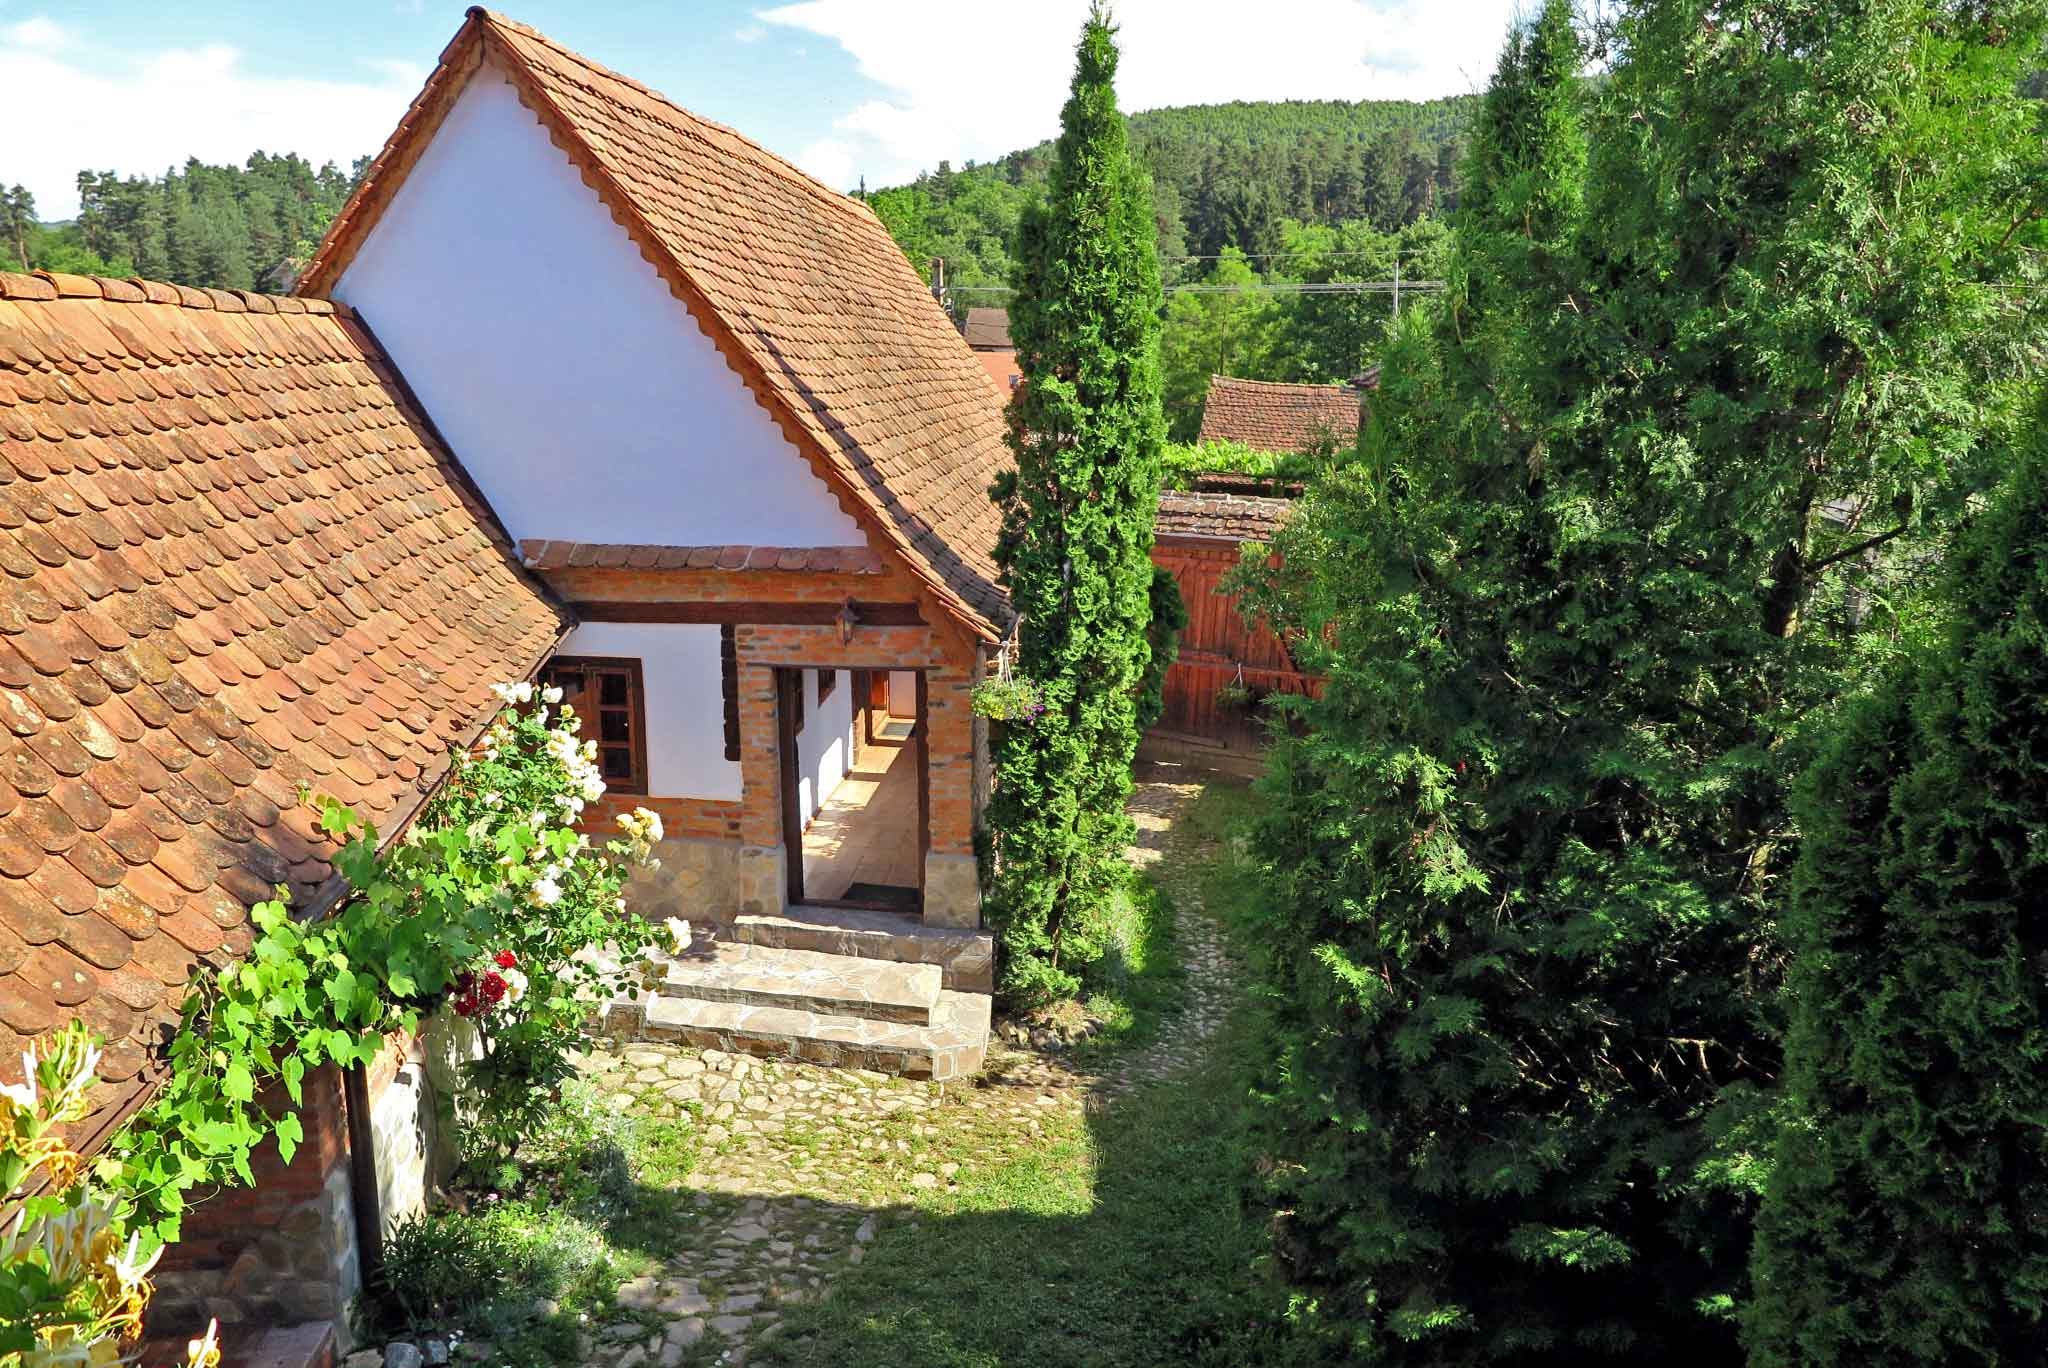 carpathian farm house for rent in romania at the foot of the carpathian mountains